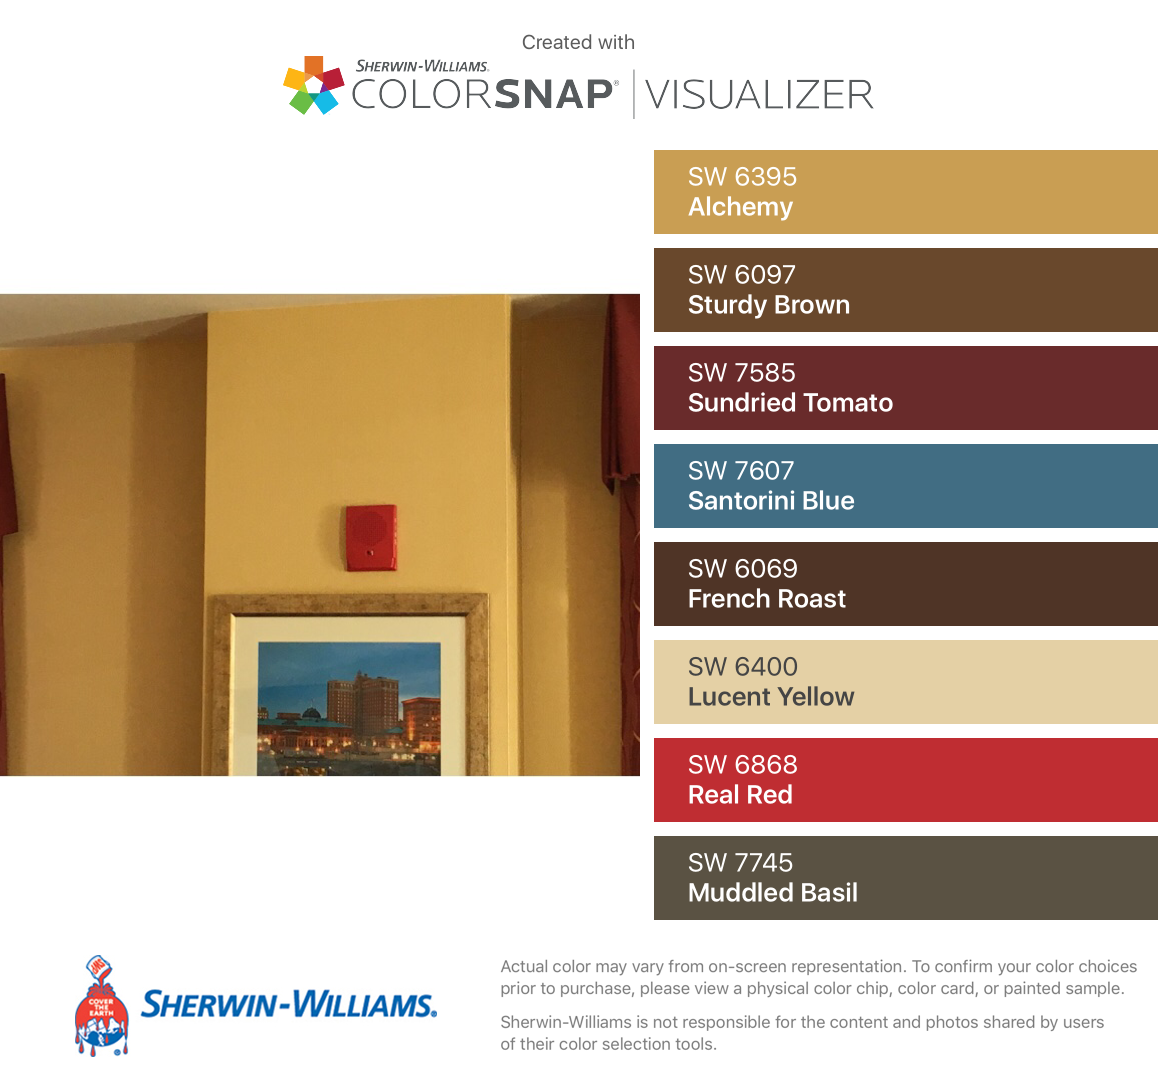 I Found These Colors With Colorsnap